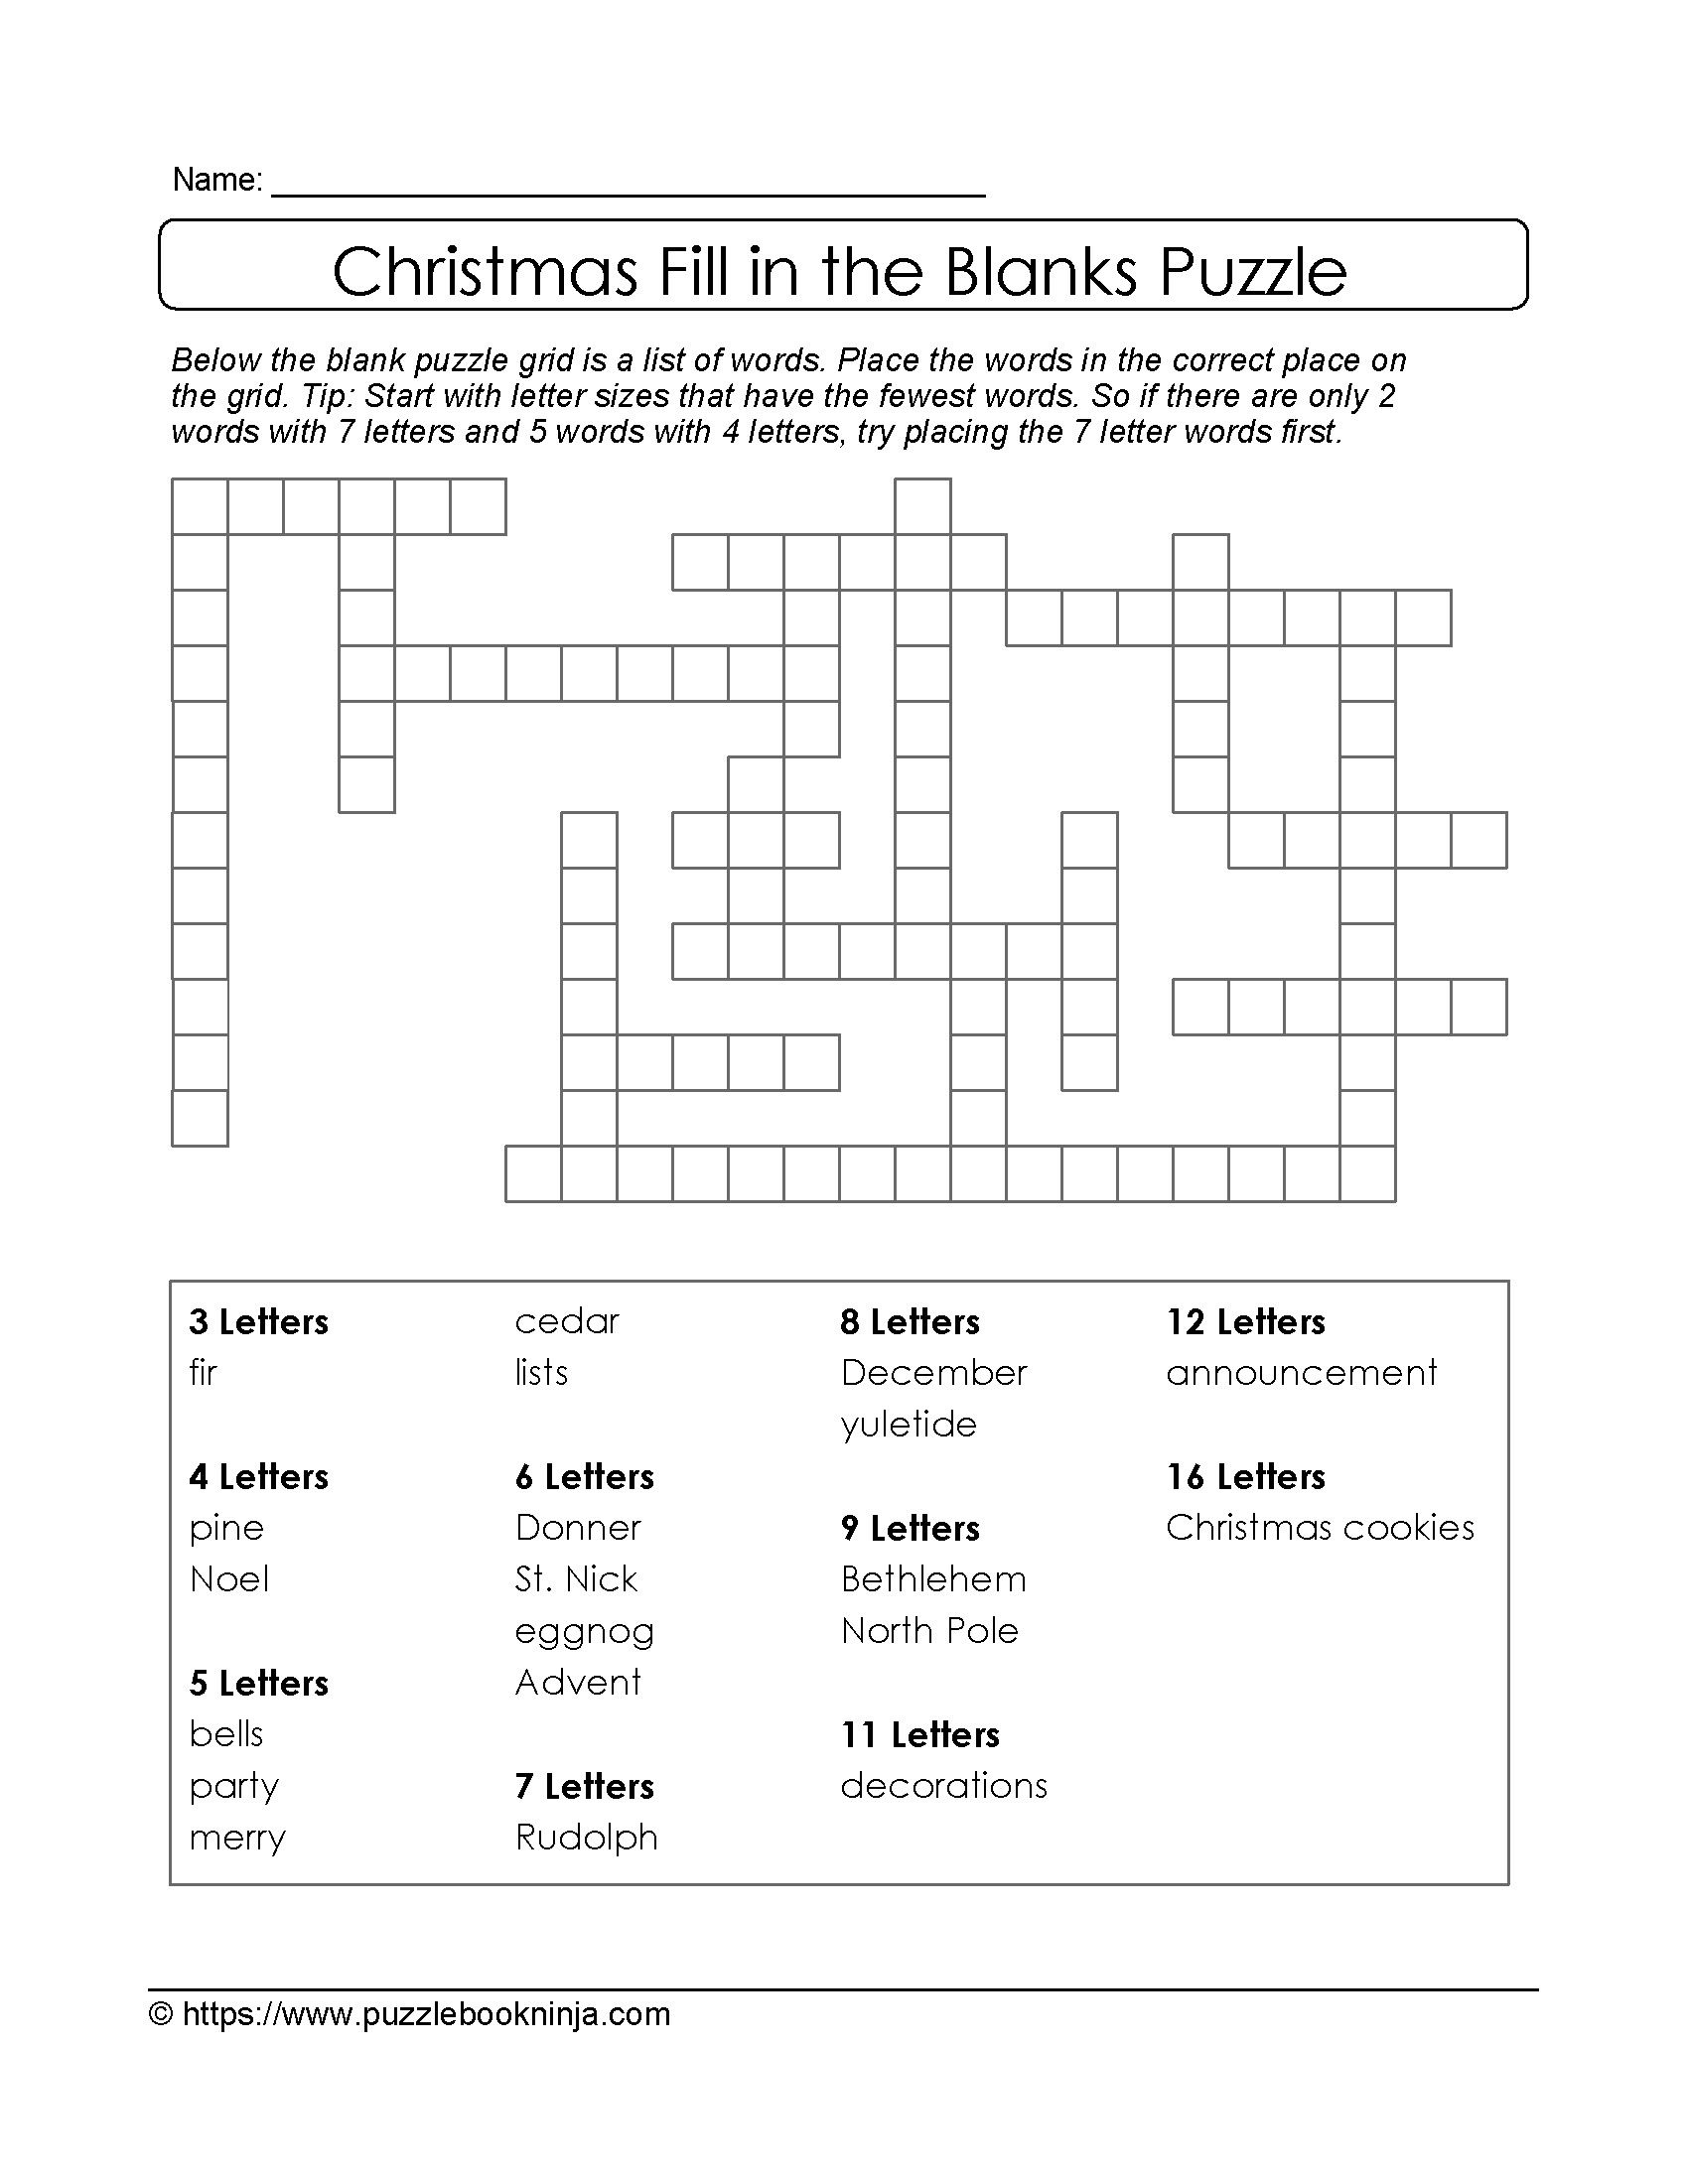 Christmas Printable Puzzle. Free Fill In The Blanks. | Christmas - 9 Letter Word Puzzles Printable